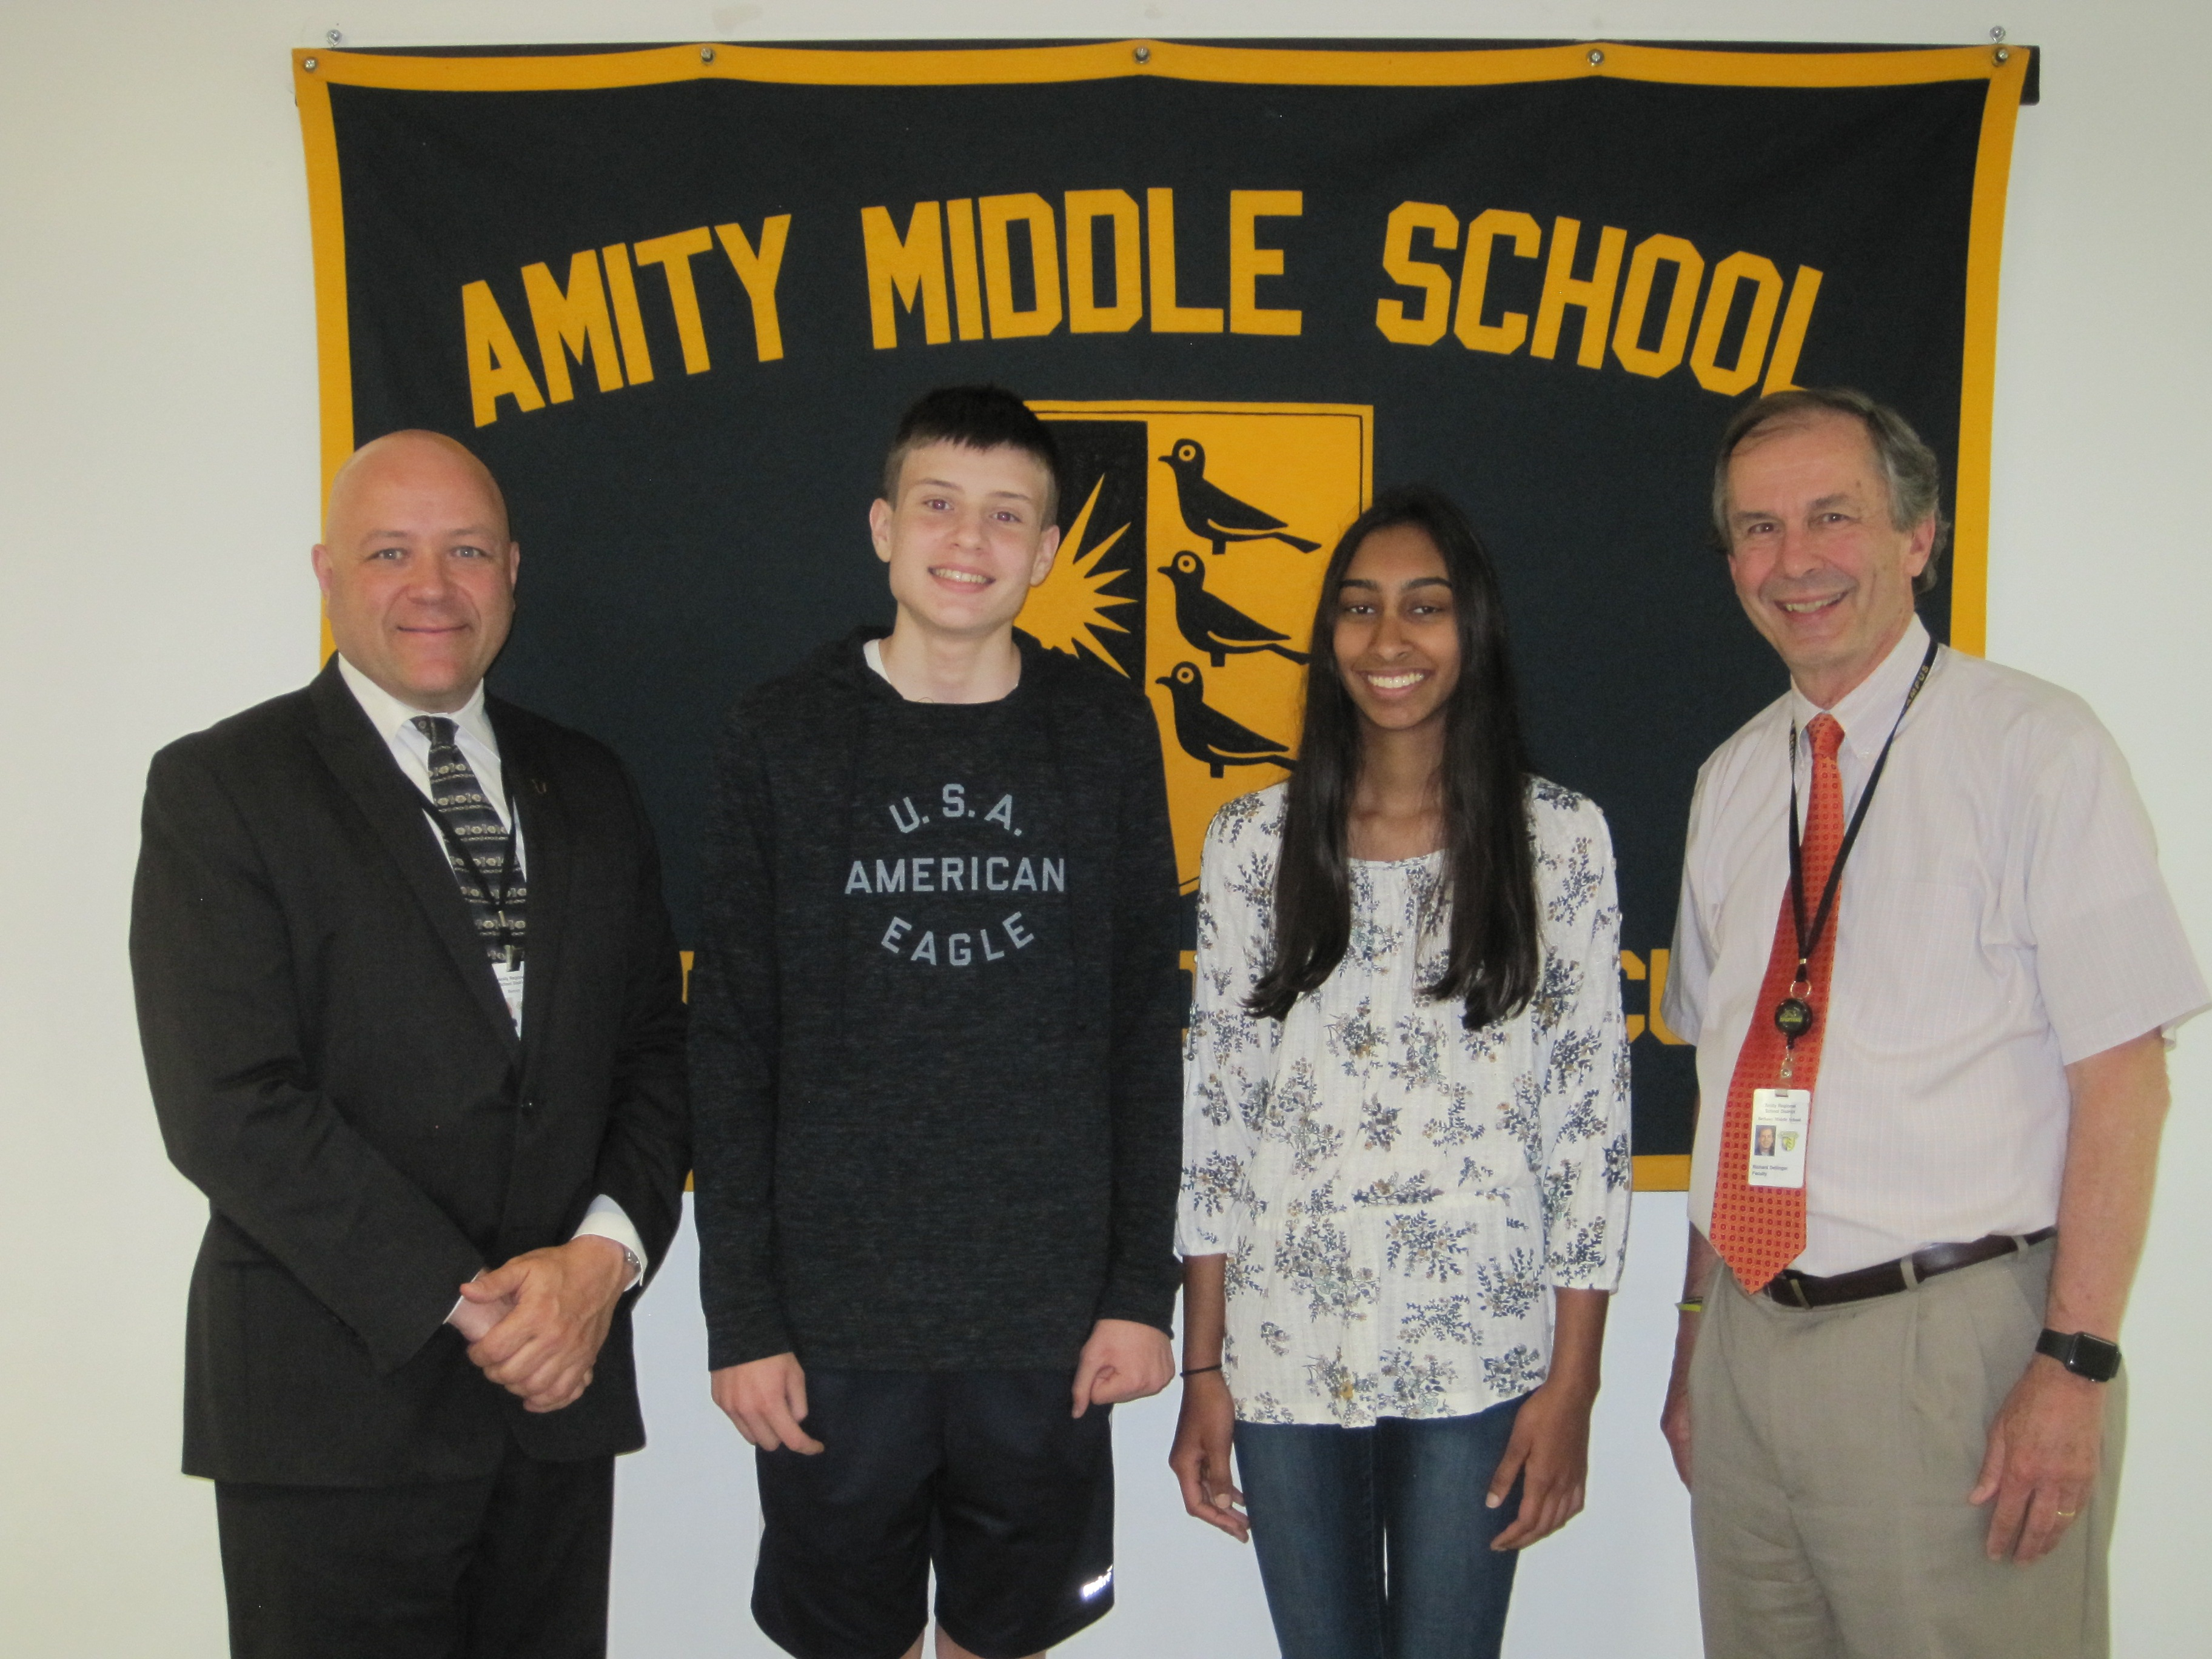 Amity Middle School, Bethany Campus Connecticut Association of Boards of Education (CABE) Student Leadership Award -2018